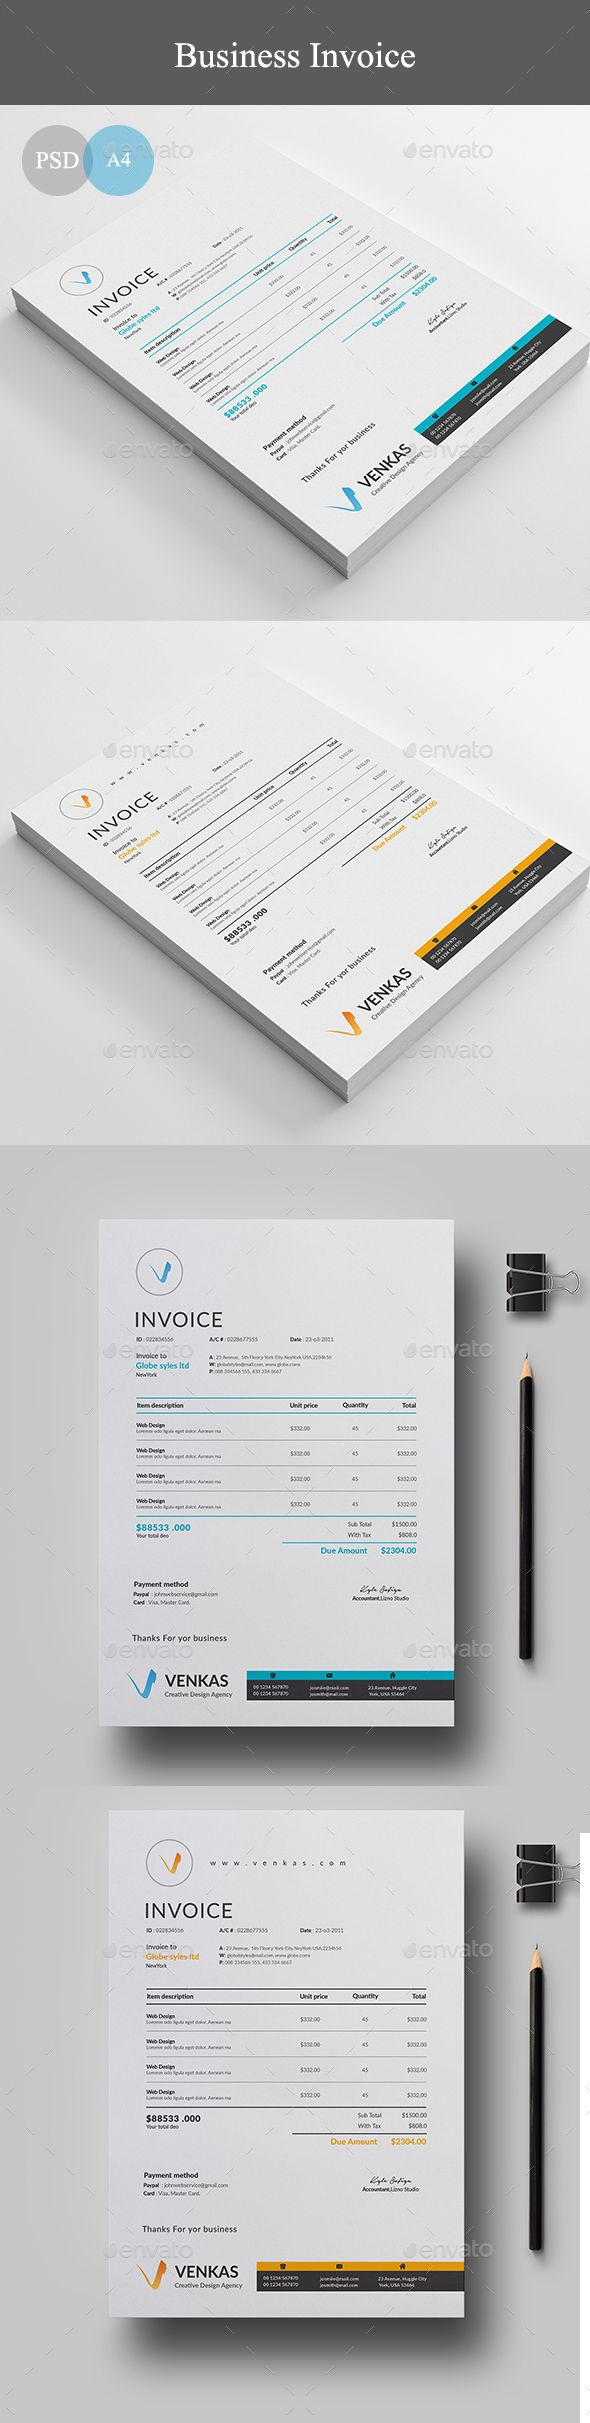 Invoice by linzo91 Invoice8.27×11.69 with 0.25�20bleeds Two Color variations300 DPI, CMYK, Print ready file Free Fonts Used